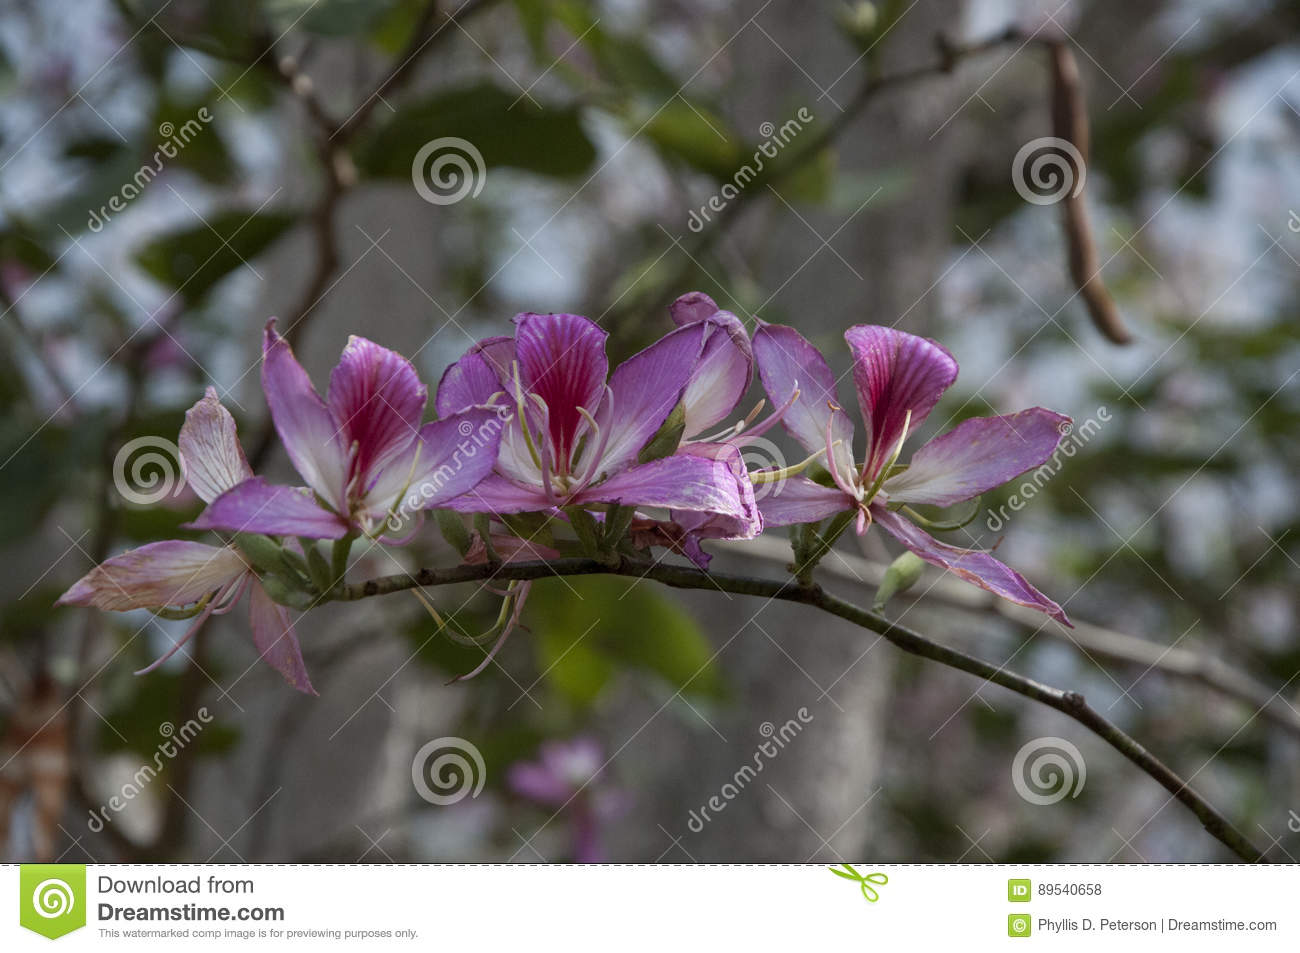 Hawaiian flowers growing on tree limb hawaii usa stock photo download hawaiian flowers growing on tree limb hawaii usa stock photo image of izmirmasajfo